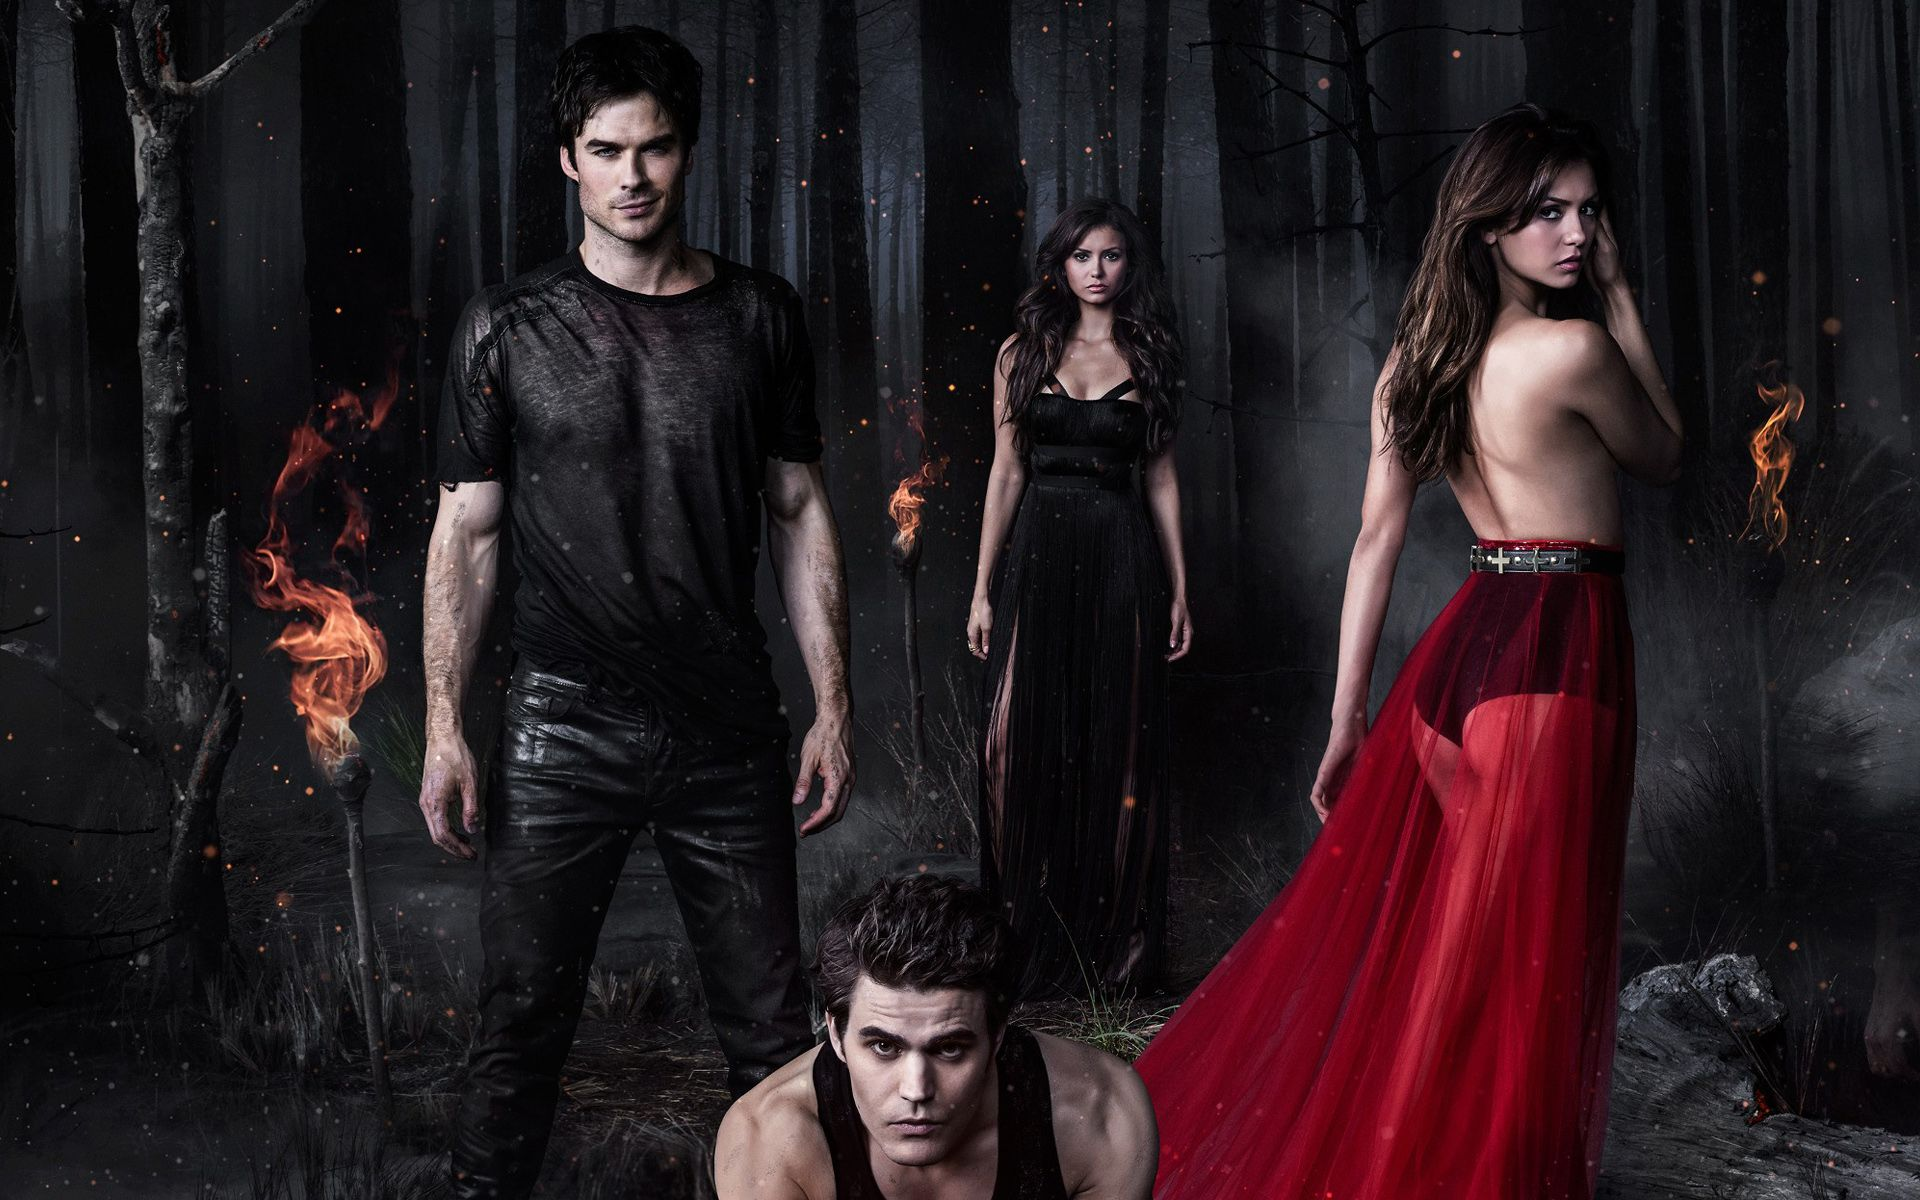 Vampire Diaries Wallpaper 12144 1920x1200 px ~ HDWallSource.com